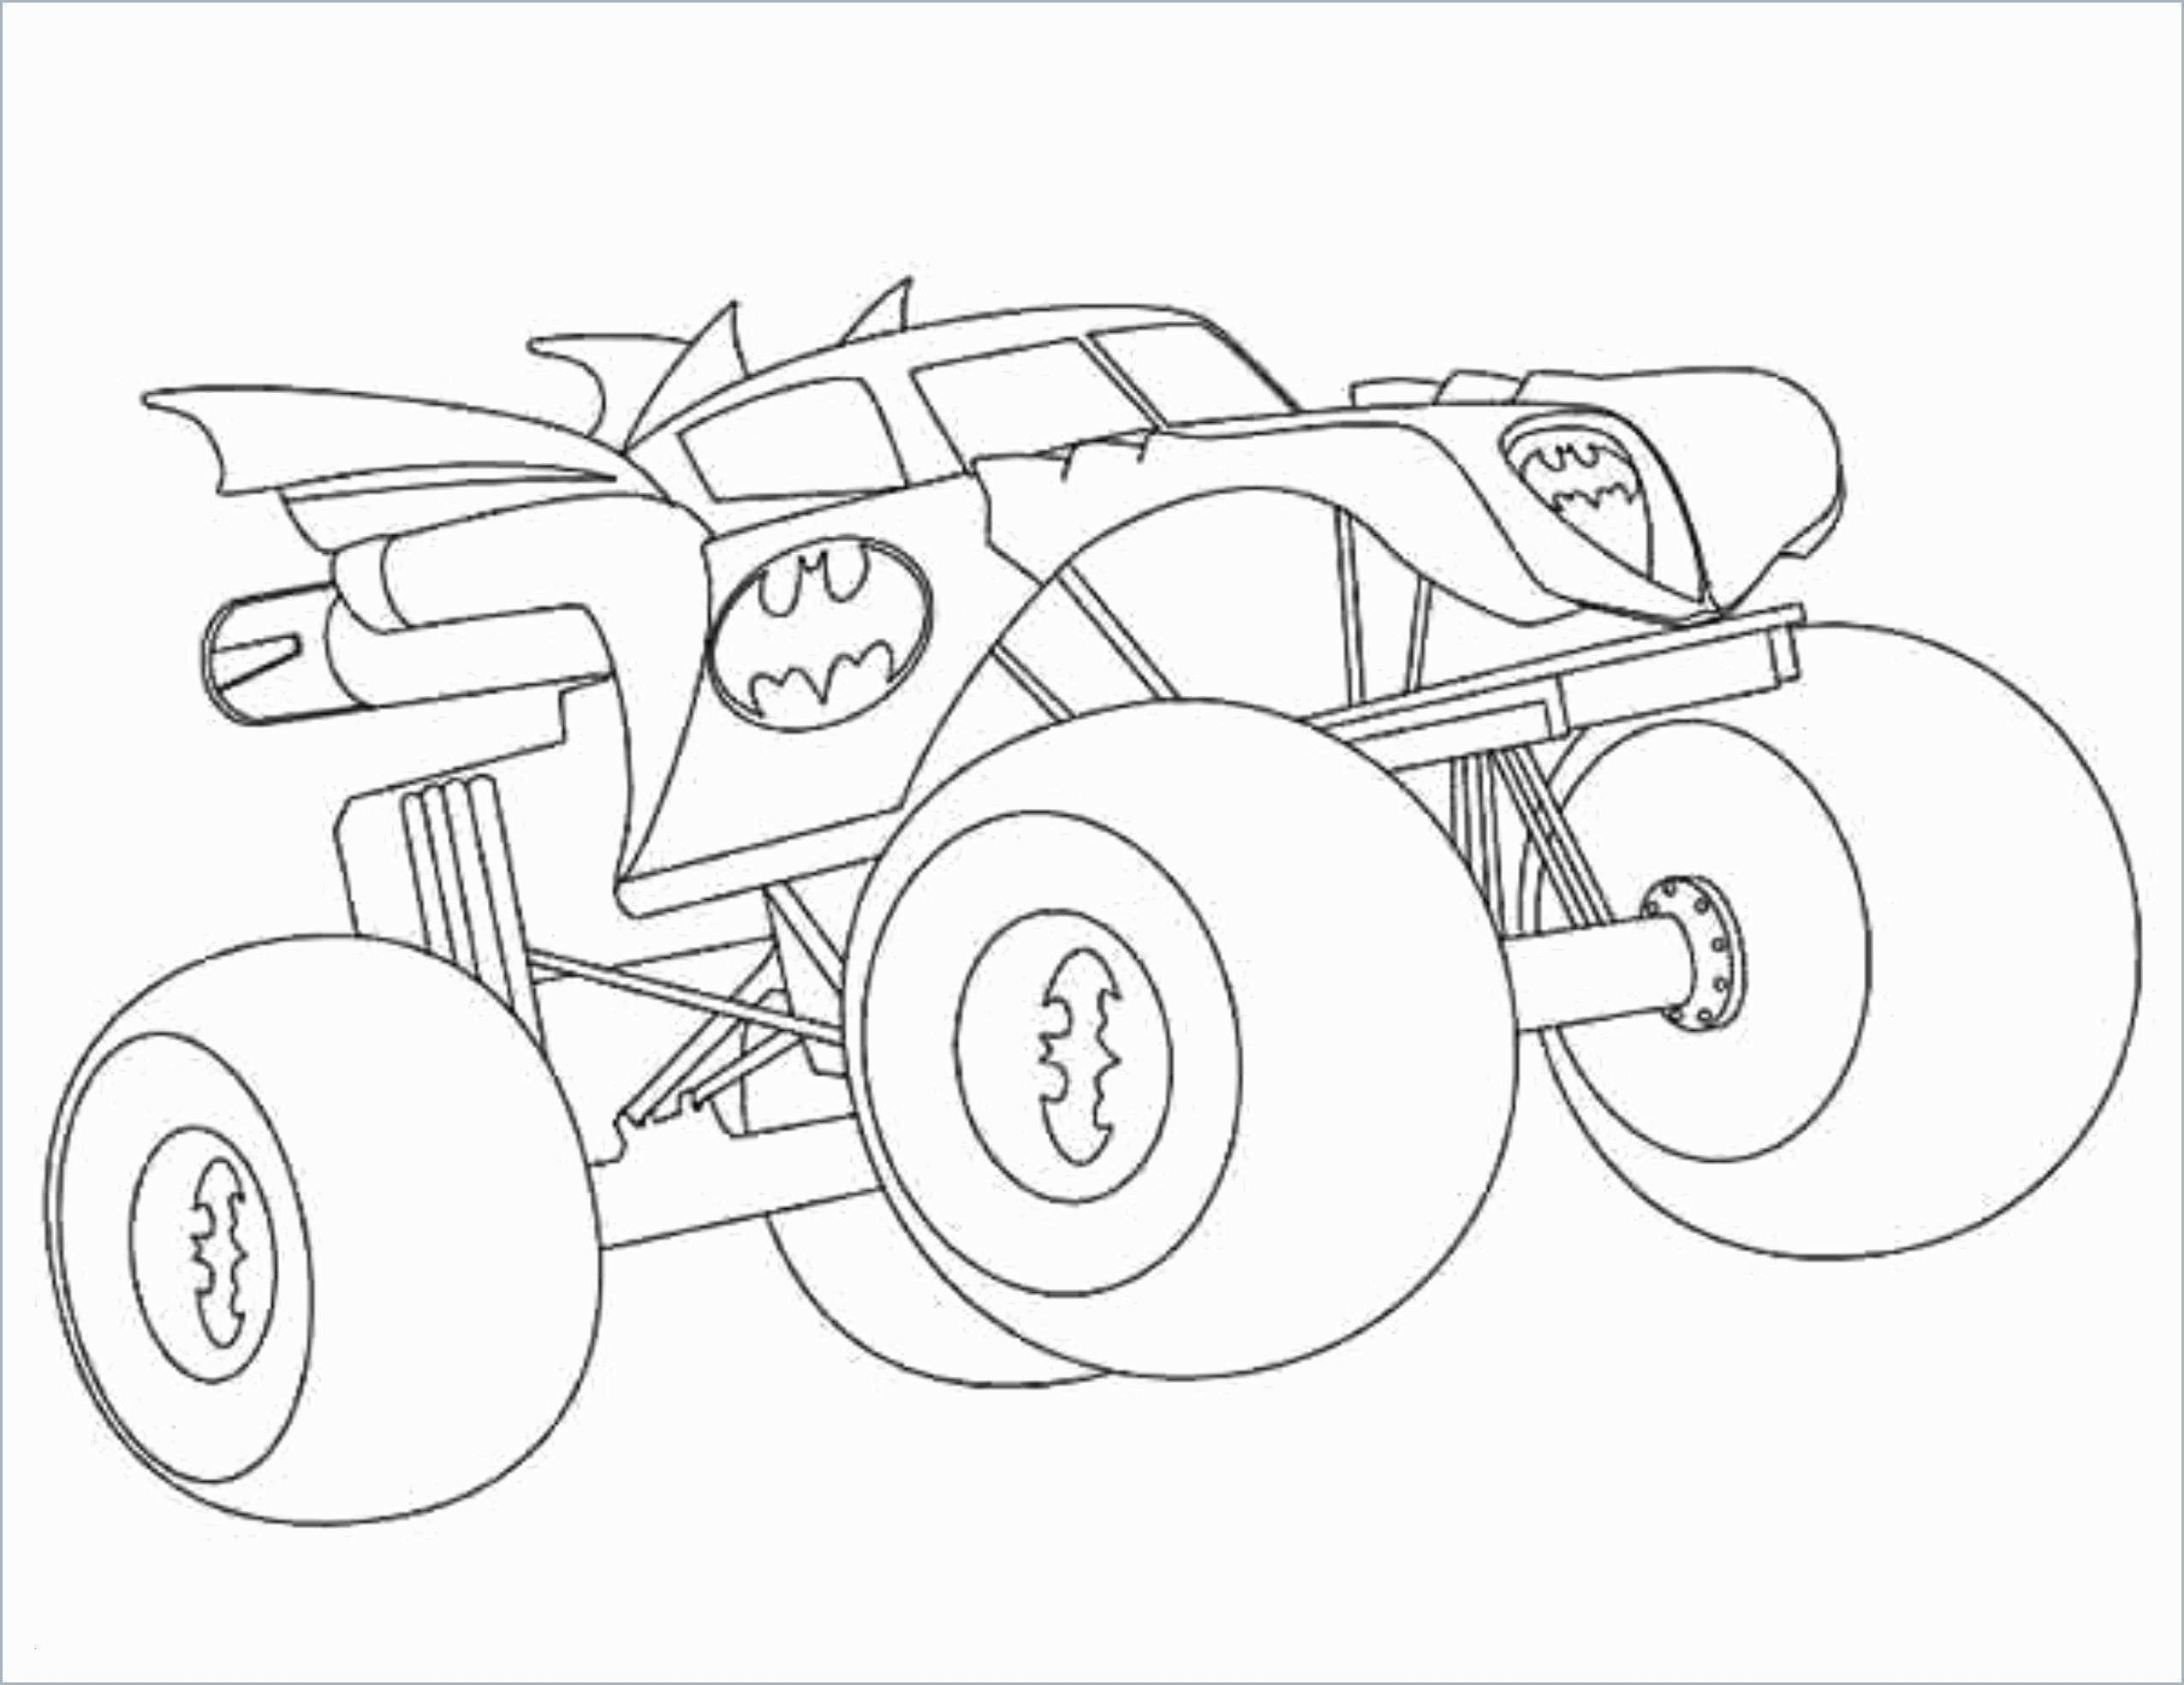 New Coloring Pages Monster Trucks For You Monster Truck Coloring Pages Monster Coloring Pages Truck Coloring Pages